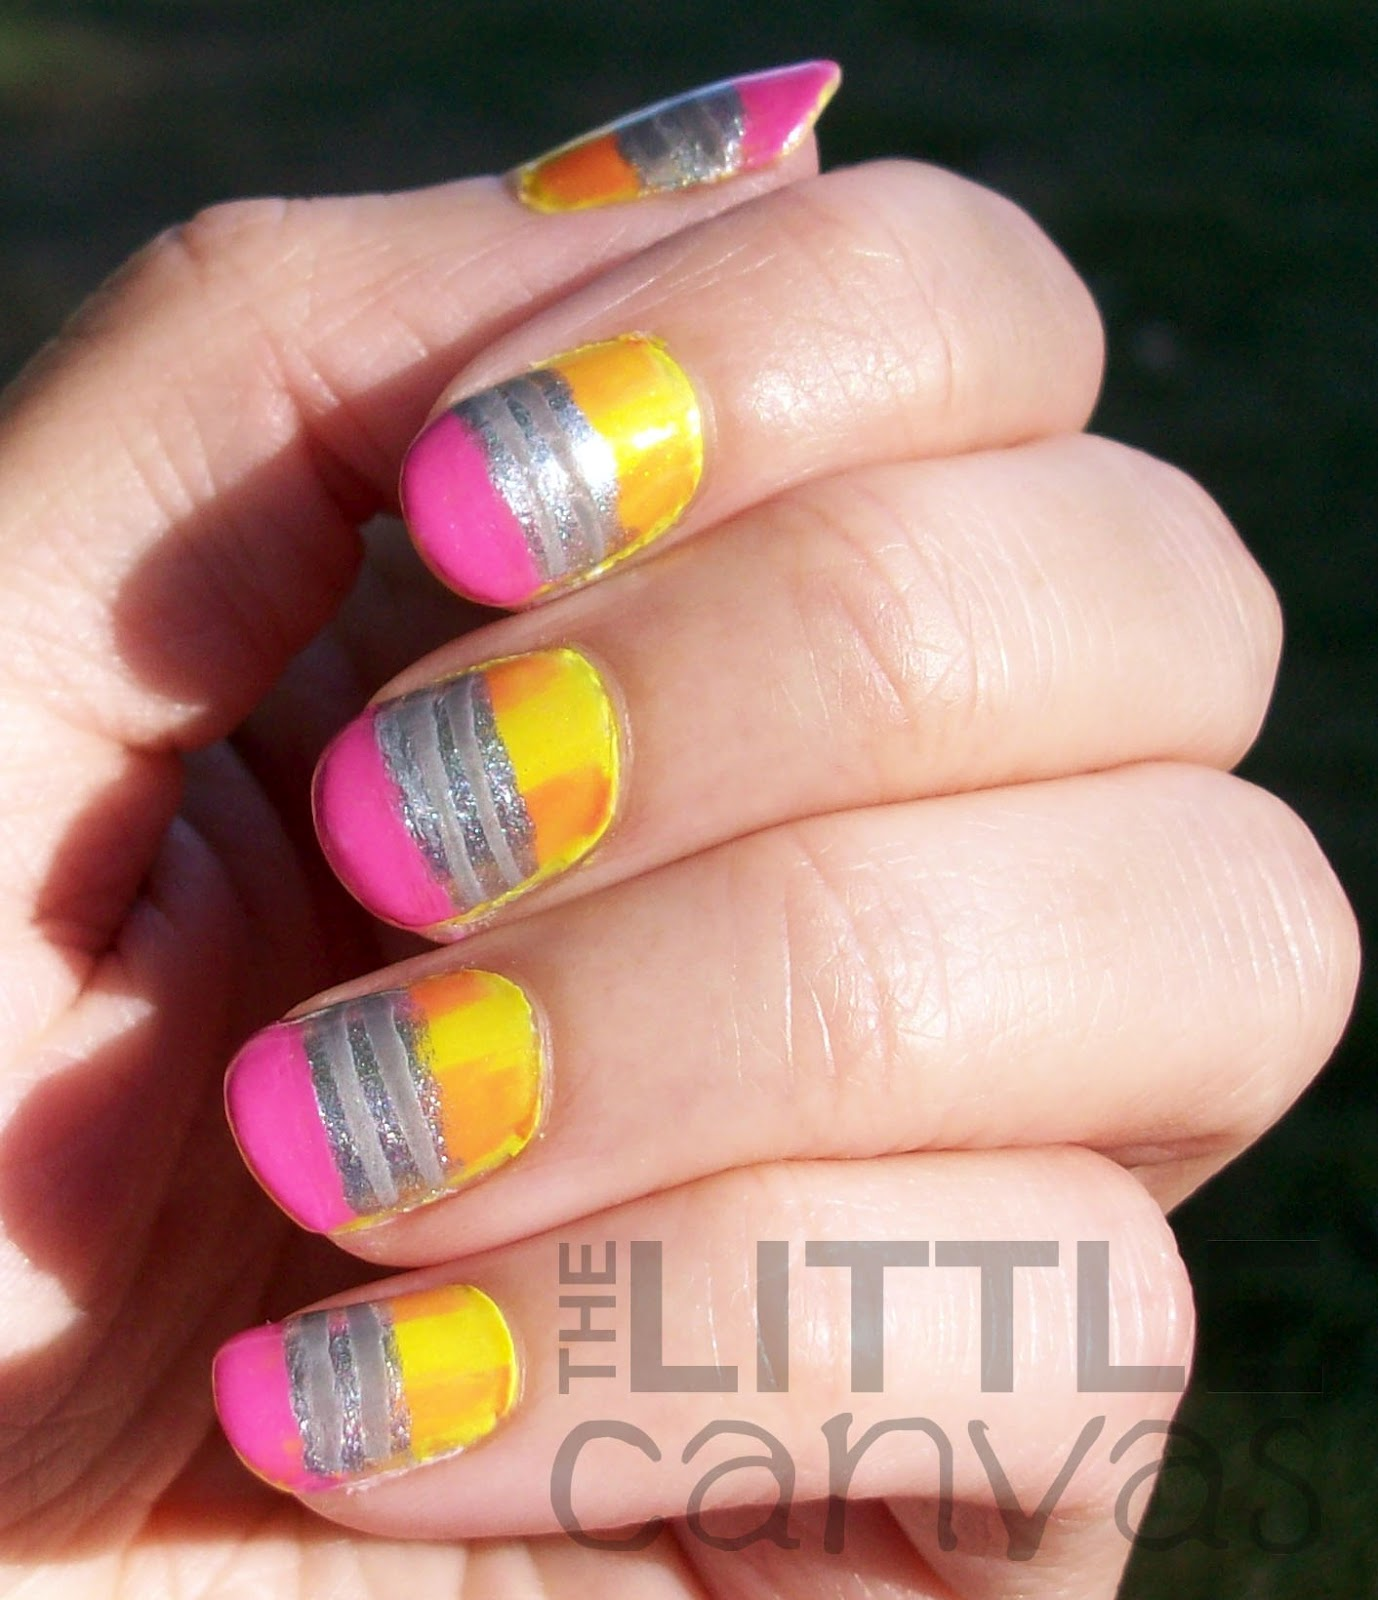 Back to school pencil nail art the little canvas back to school pencil nail art prinsesfo Gallery